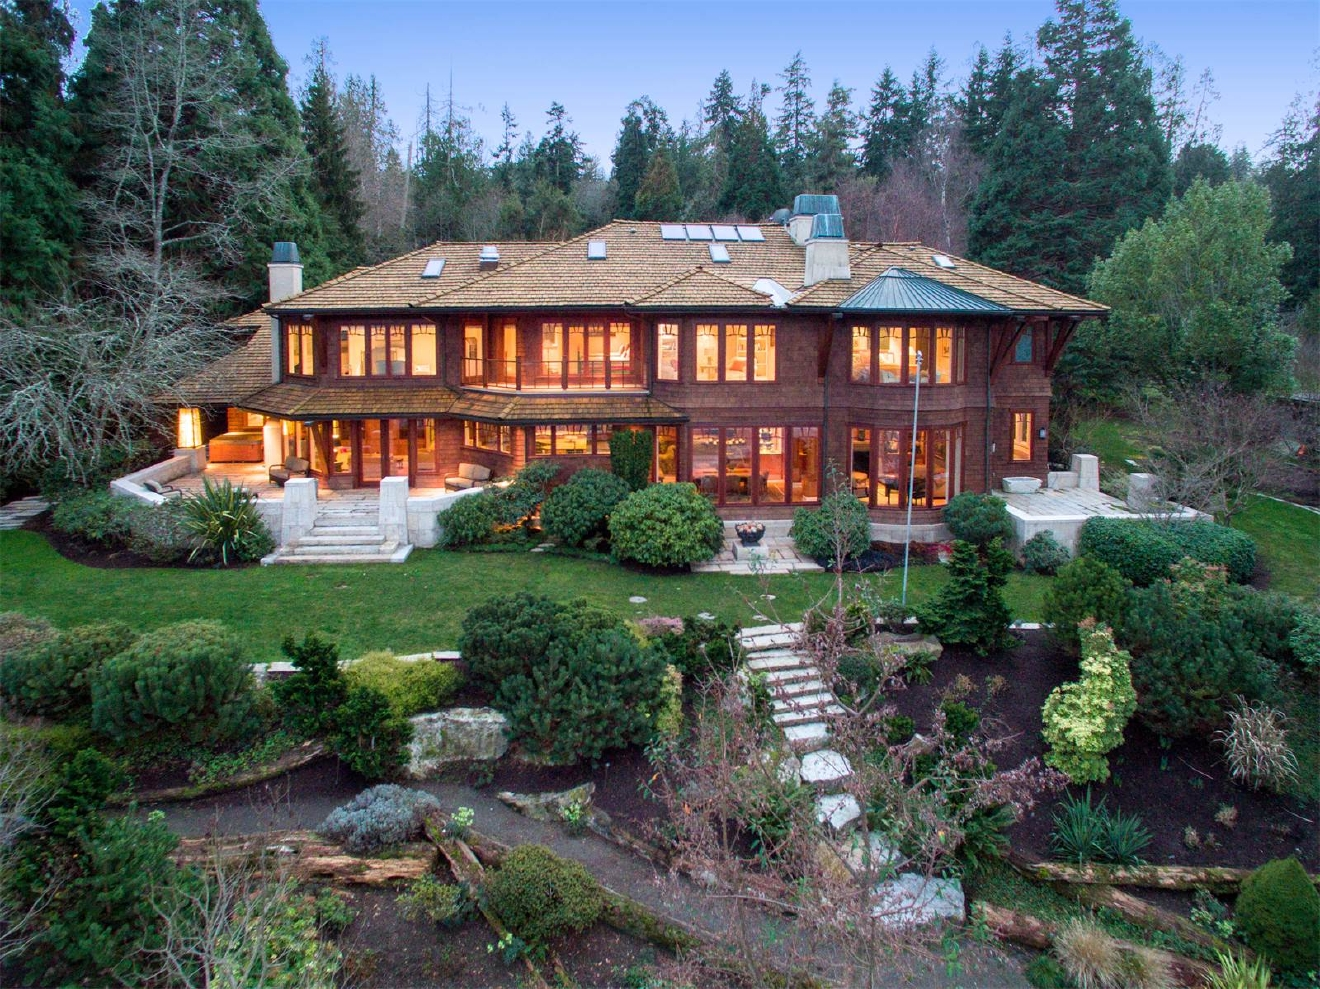 The most expensive home for sale on Bainbridge Island on Zillow is this 6 beds, 7 baths home selling for $5,888,888 along Blakely Harbor. It's 7,266 square feet (Image courtesy of Kristi Nelson).